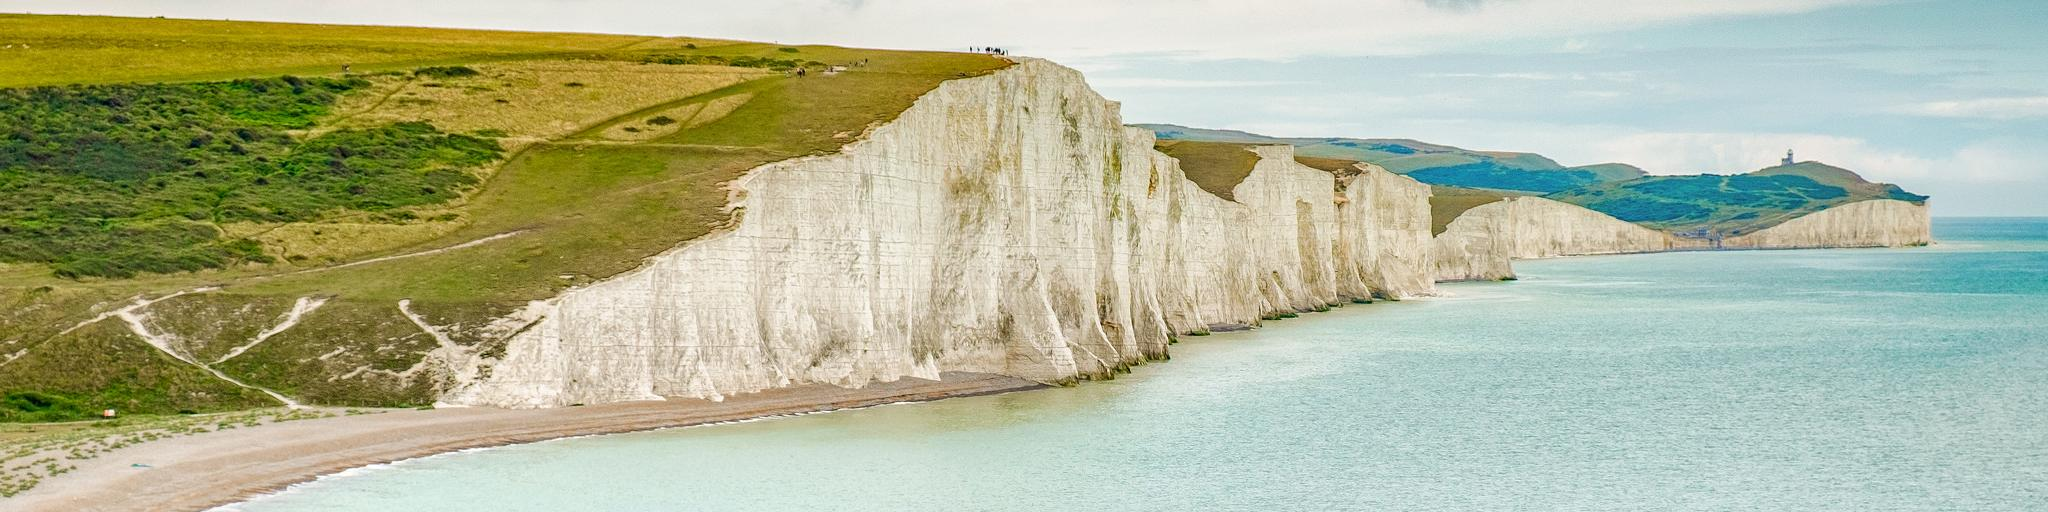 Seven Sisters cliffs in East Sussex